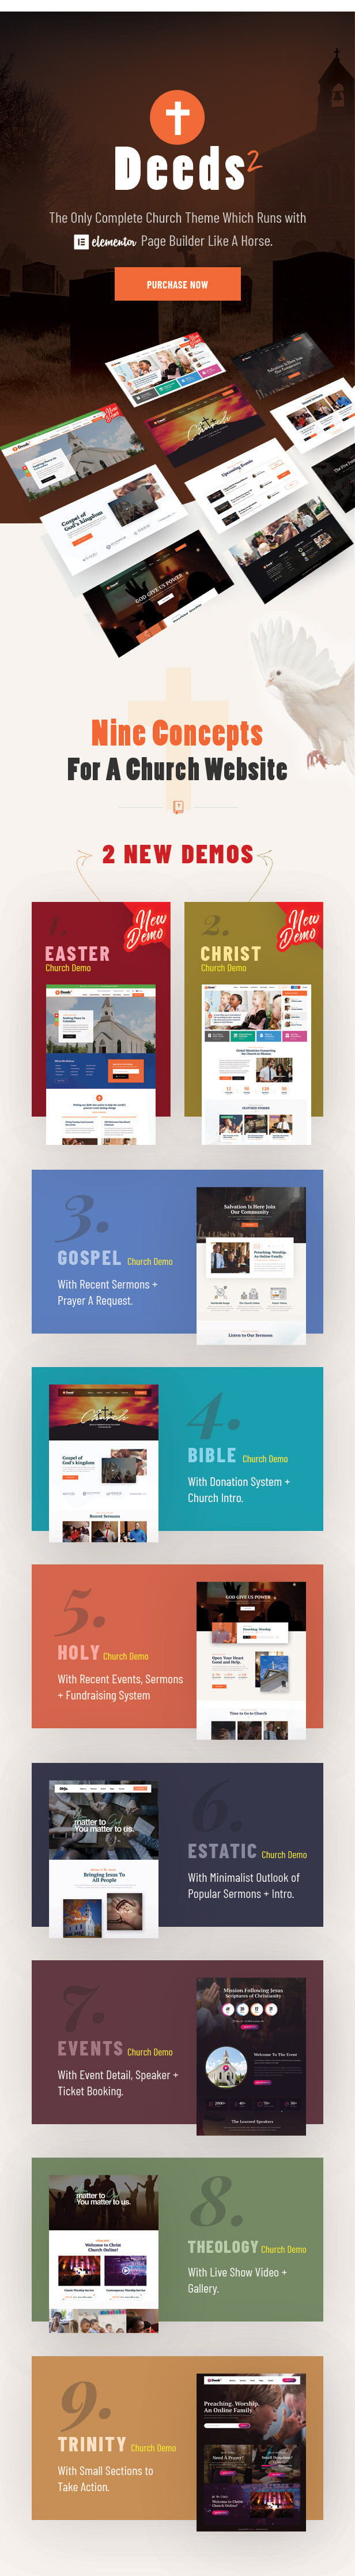 Deeds2 - Religion and Church WordPress Theme - 3